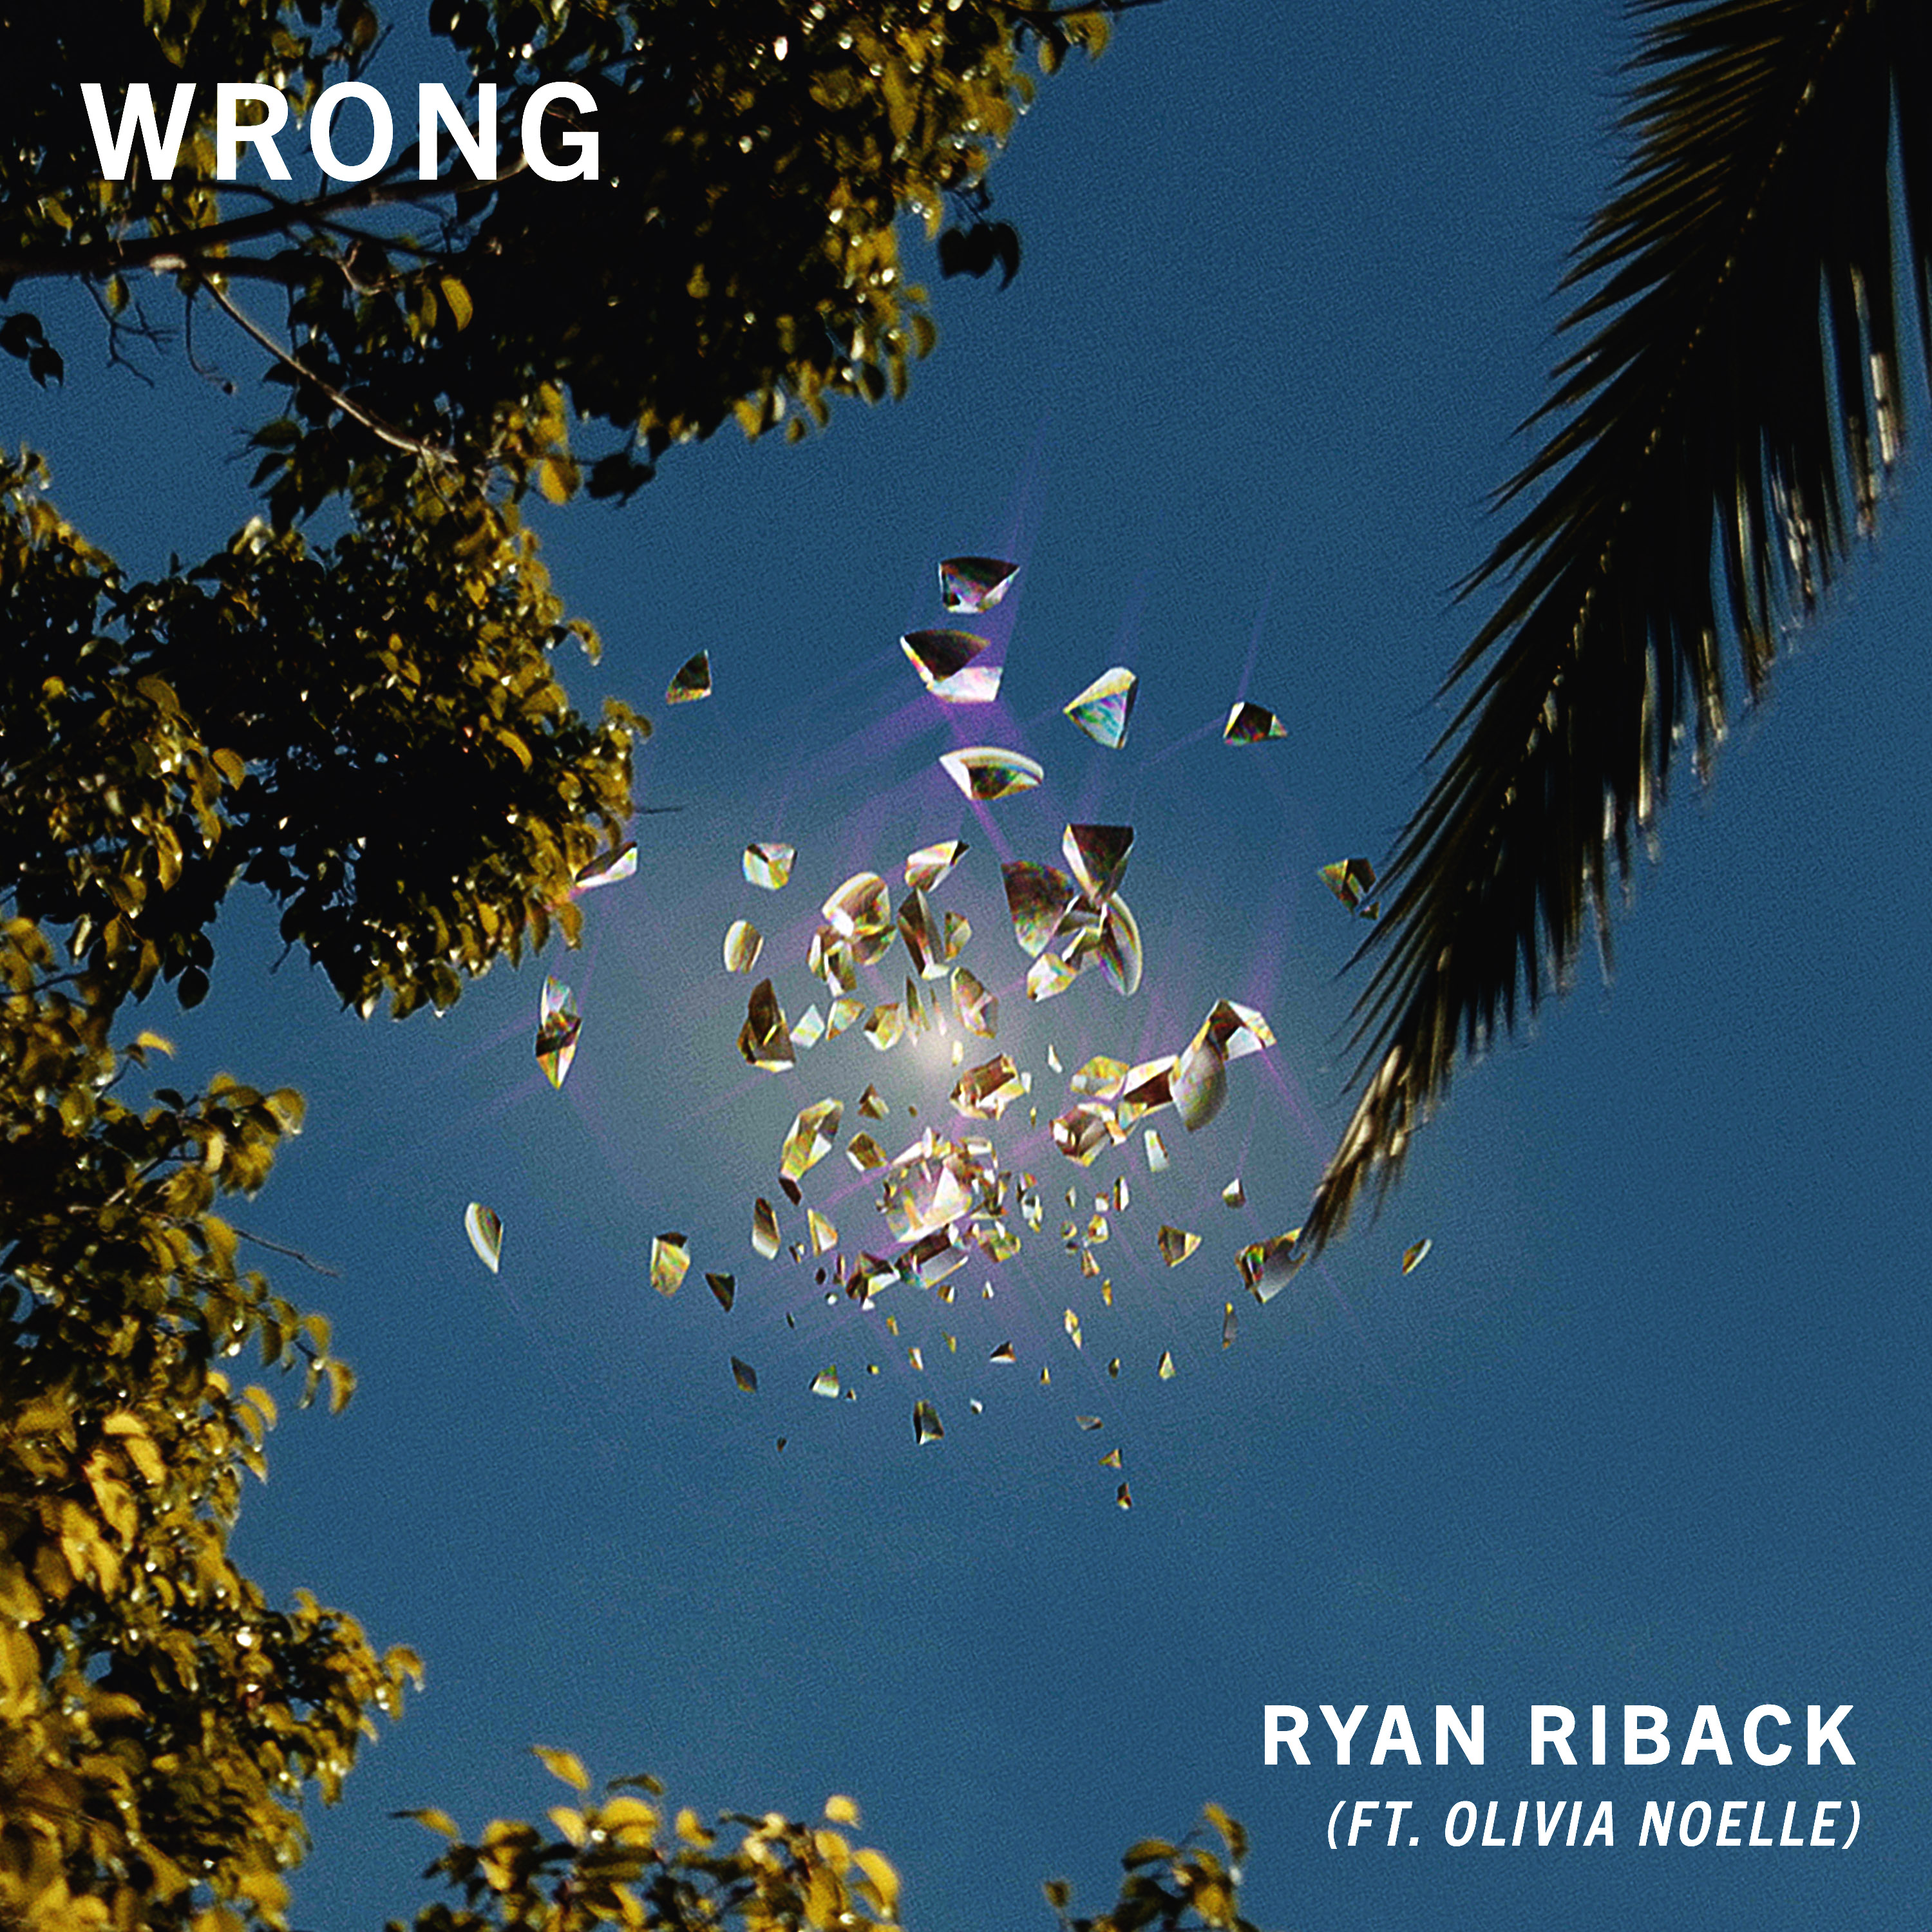 Ryan Riback releases 'Wrong' featuring Olivia Noelle